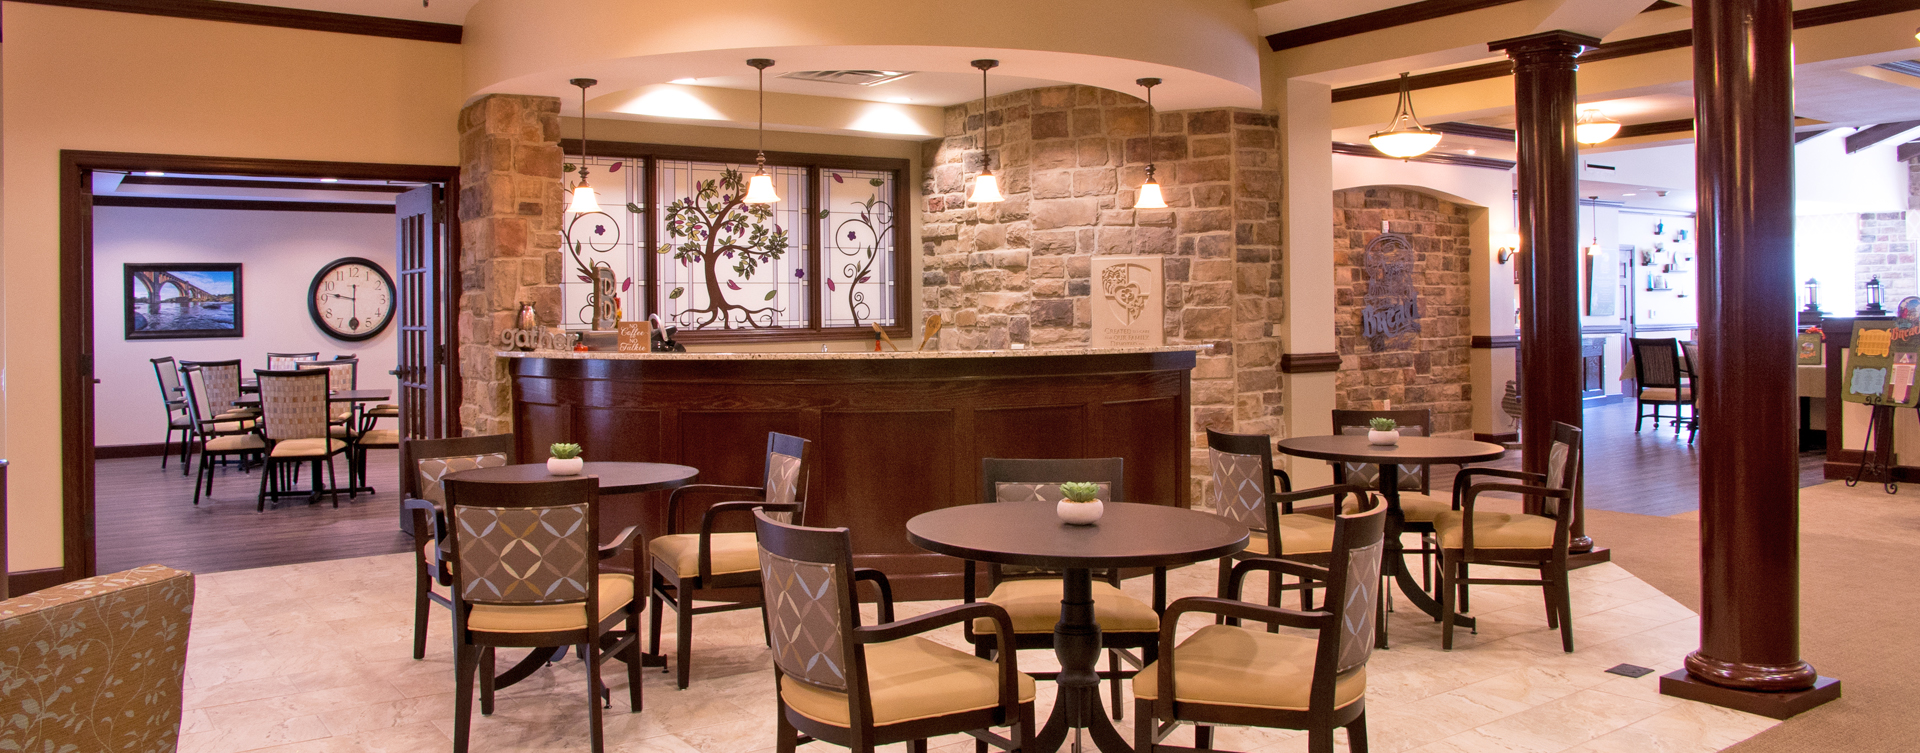 Mingle and converse with old and new friends alike in the bistro at Bickford of Chesterfield